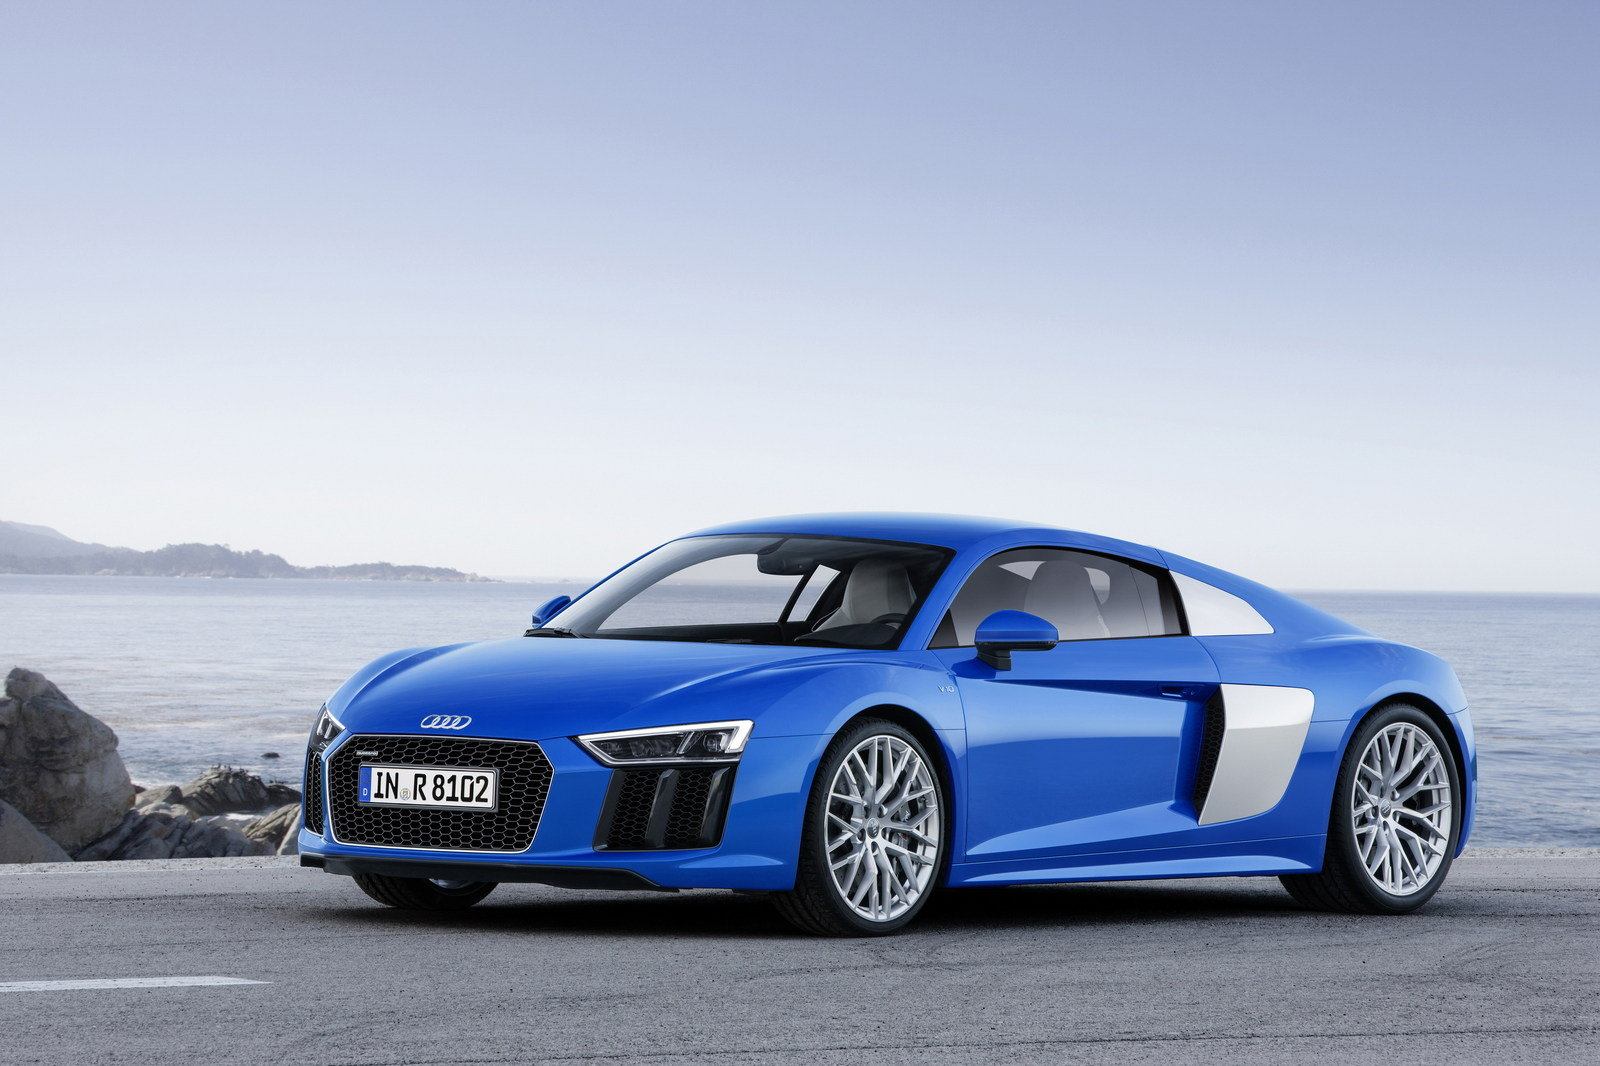 2016 audi r8 picture 619647 car review top speed. Black Bedroom Furniture Sets. Home Design Ideas